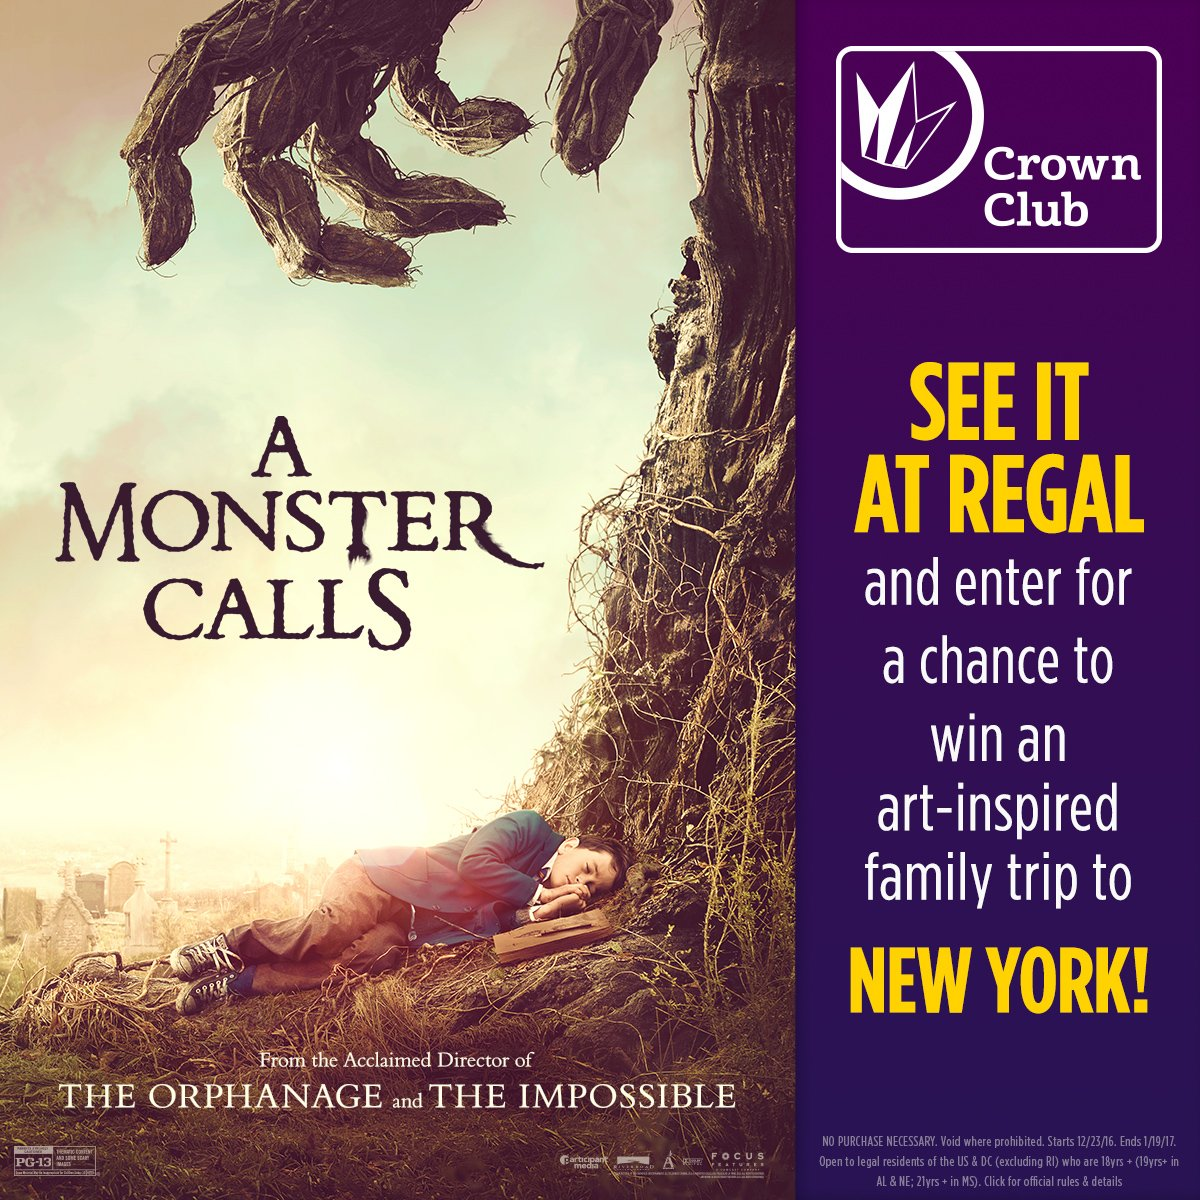 See @amonstercalls at Regal & be entered to win a family trip to New York! Official rules: https://t.co/Dmefw9CgXu https://t.co/oGxot3PiHb